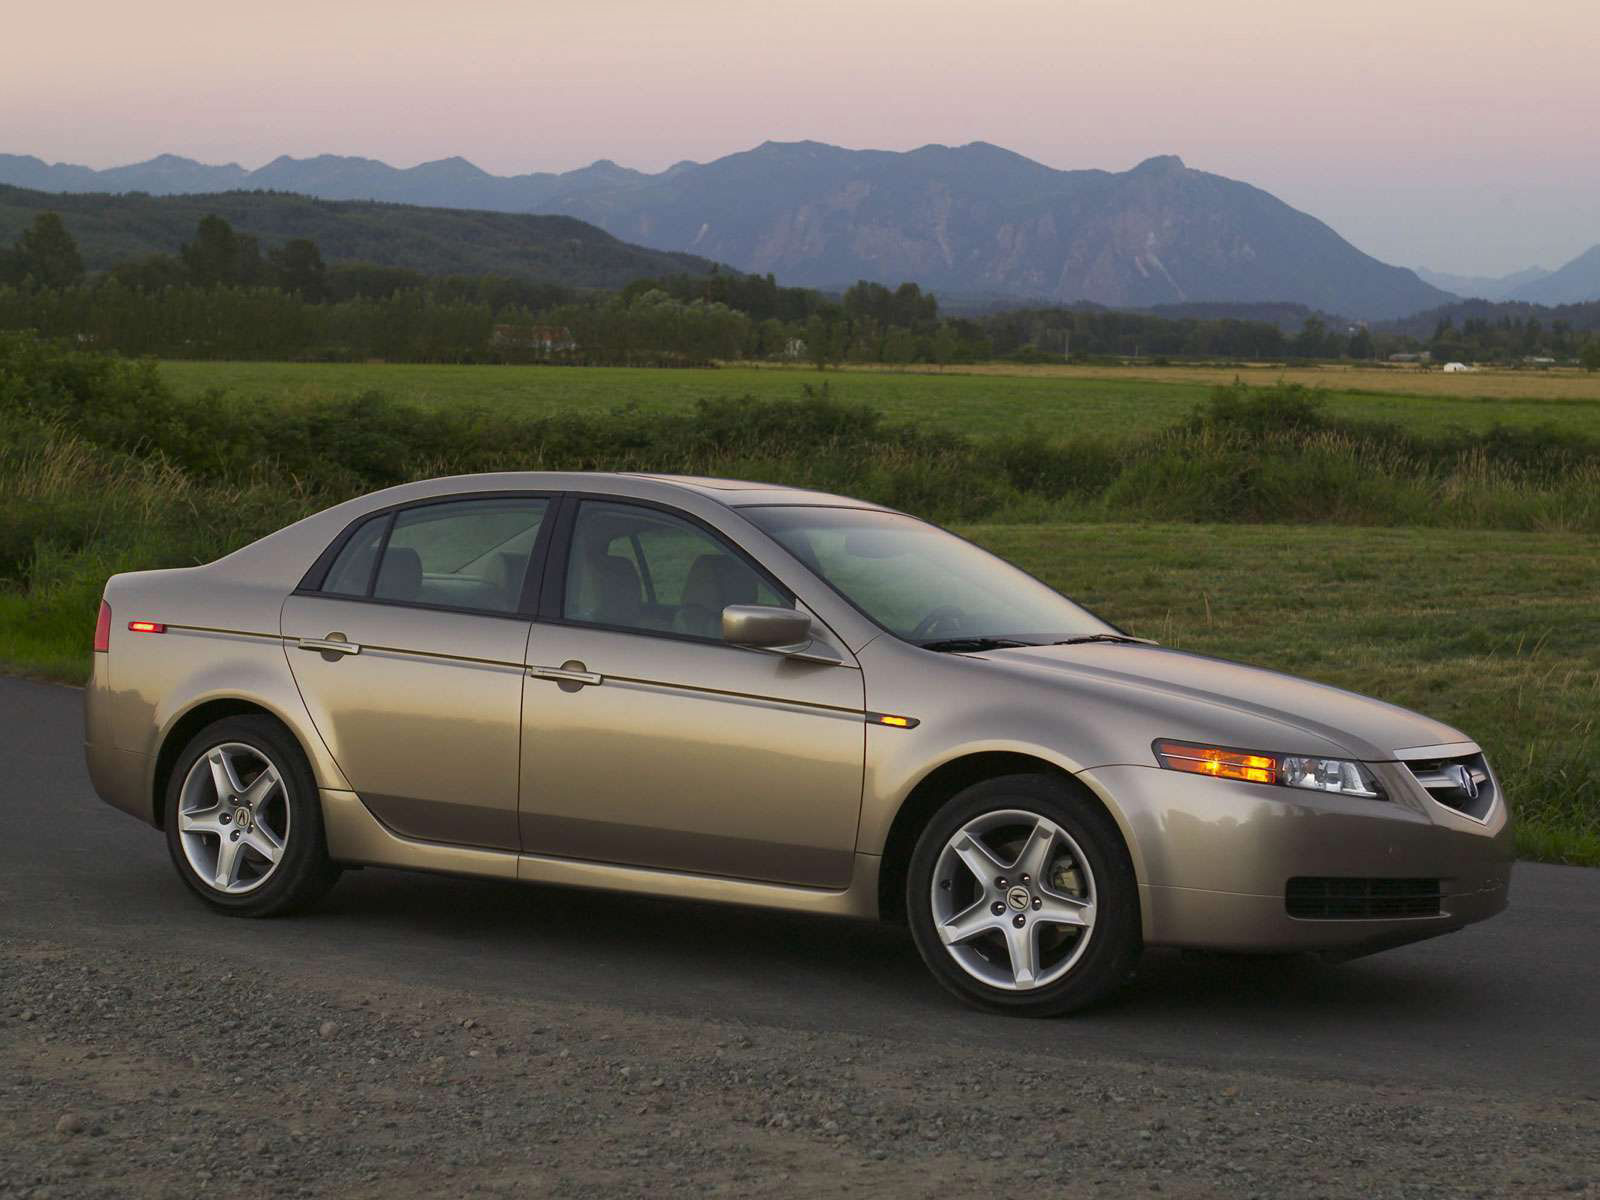 2005 acura tl japanese car wallpapers overview. Black Bedroom Furniture Sets. Home Design Ideas